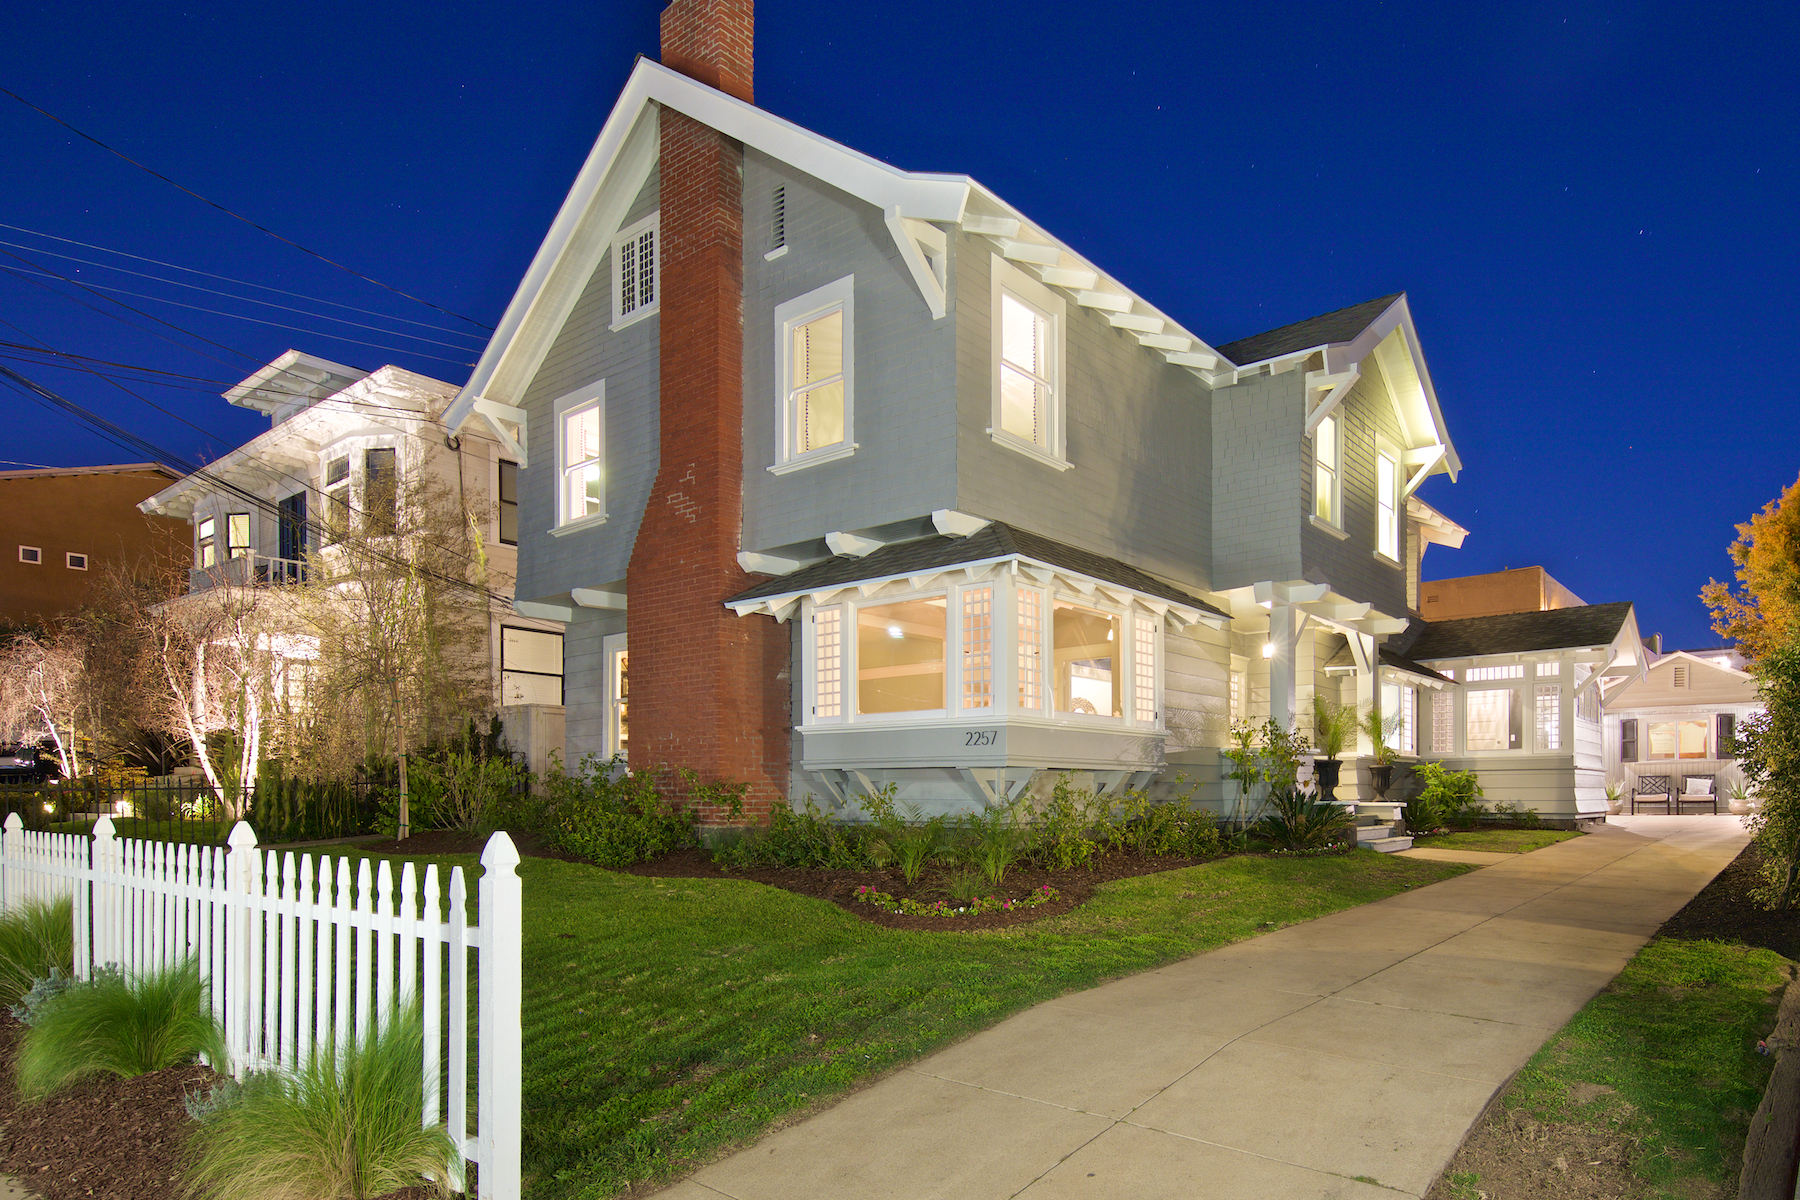 Single Family Home for Sale at 2257 Front Street San Diego, California, 92101 United States